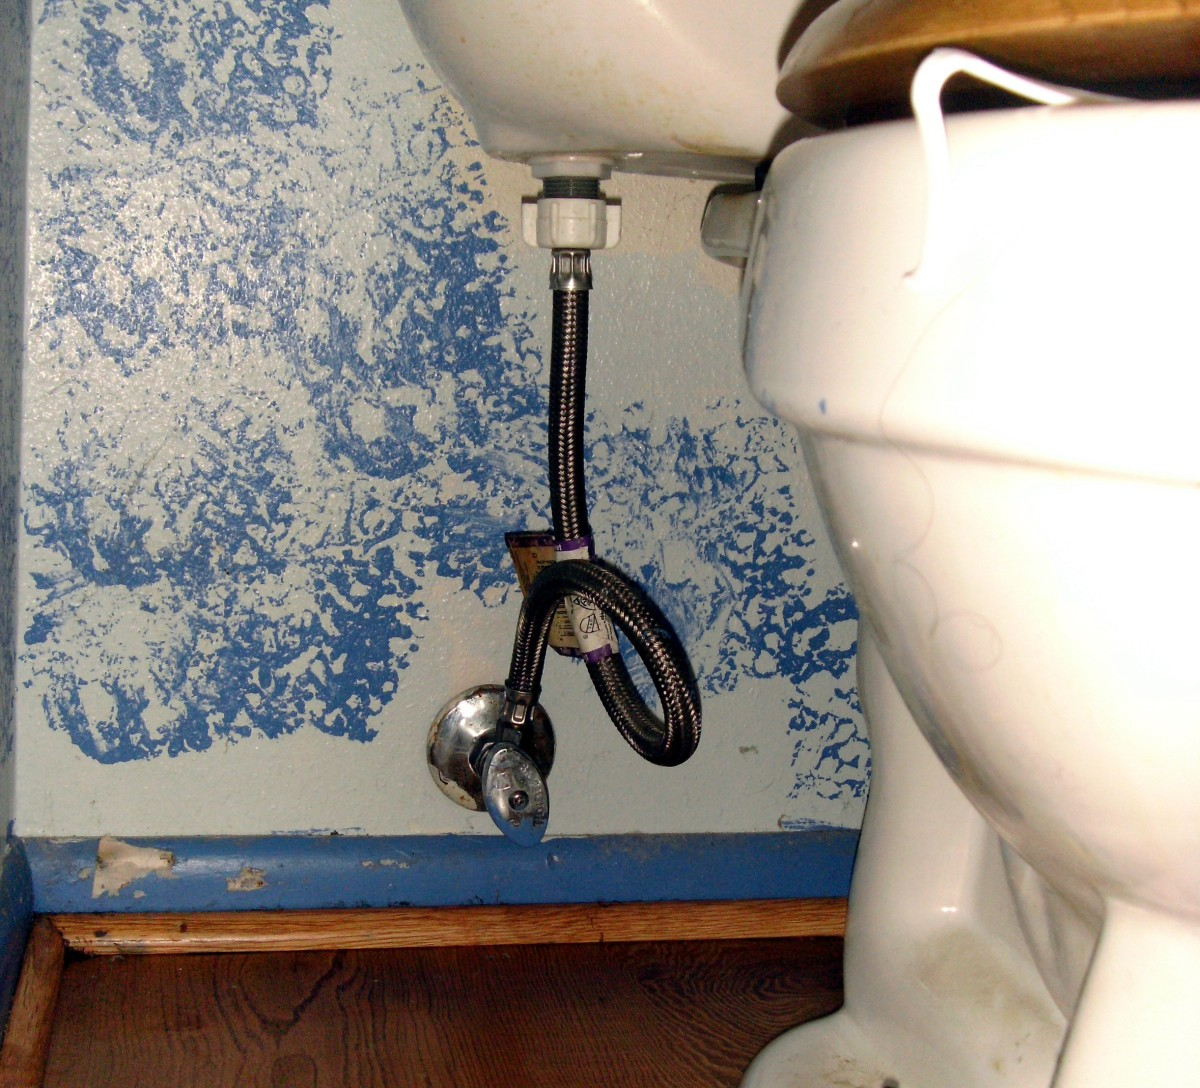 Location of the water valve and hose to the toilet tank.  This hose is braided metal; a good idea as it is not likely to ever burst.